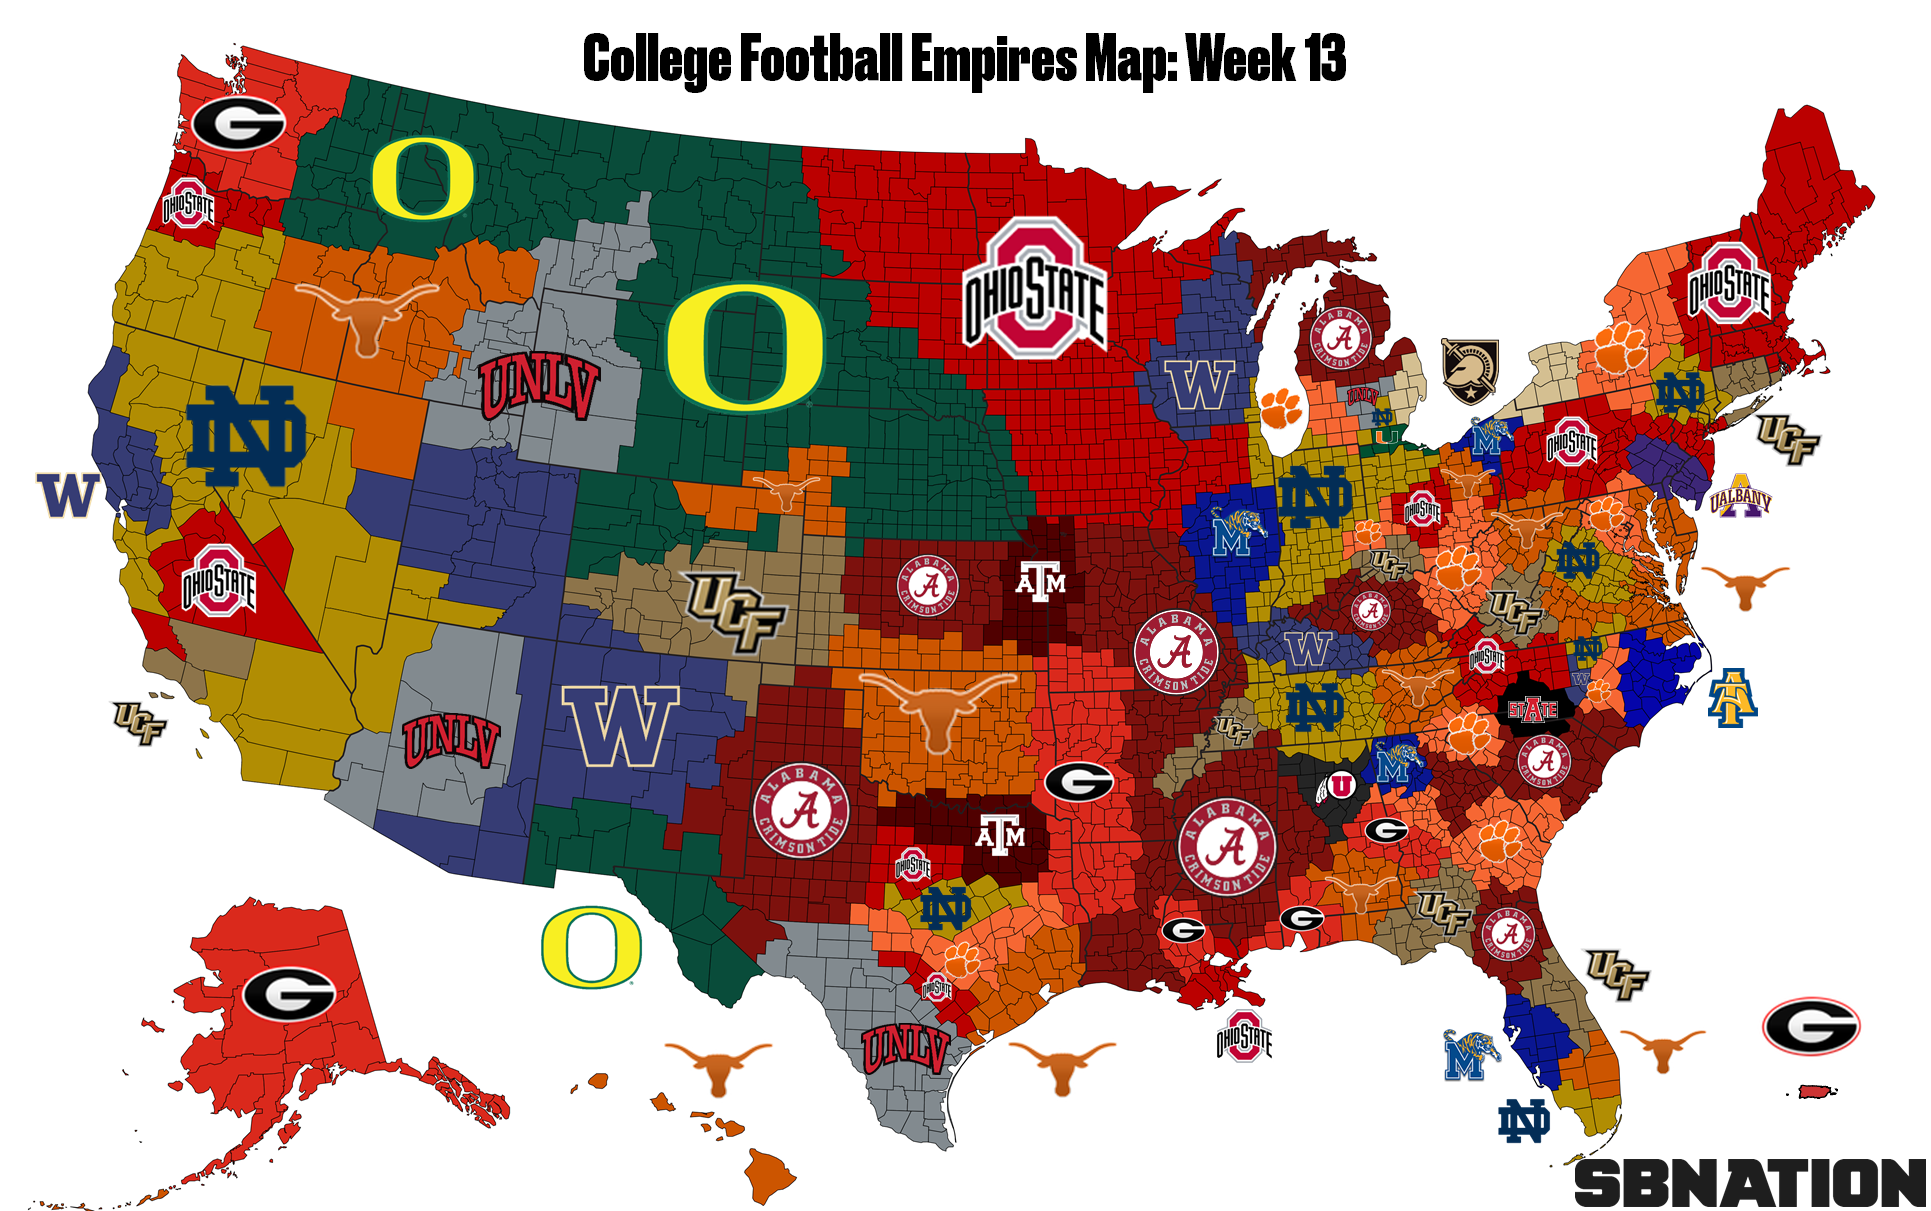 Map of College football fans in the US